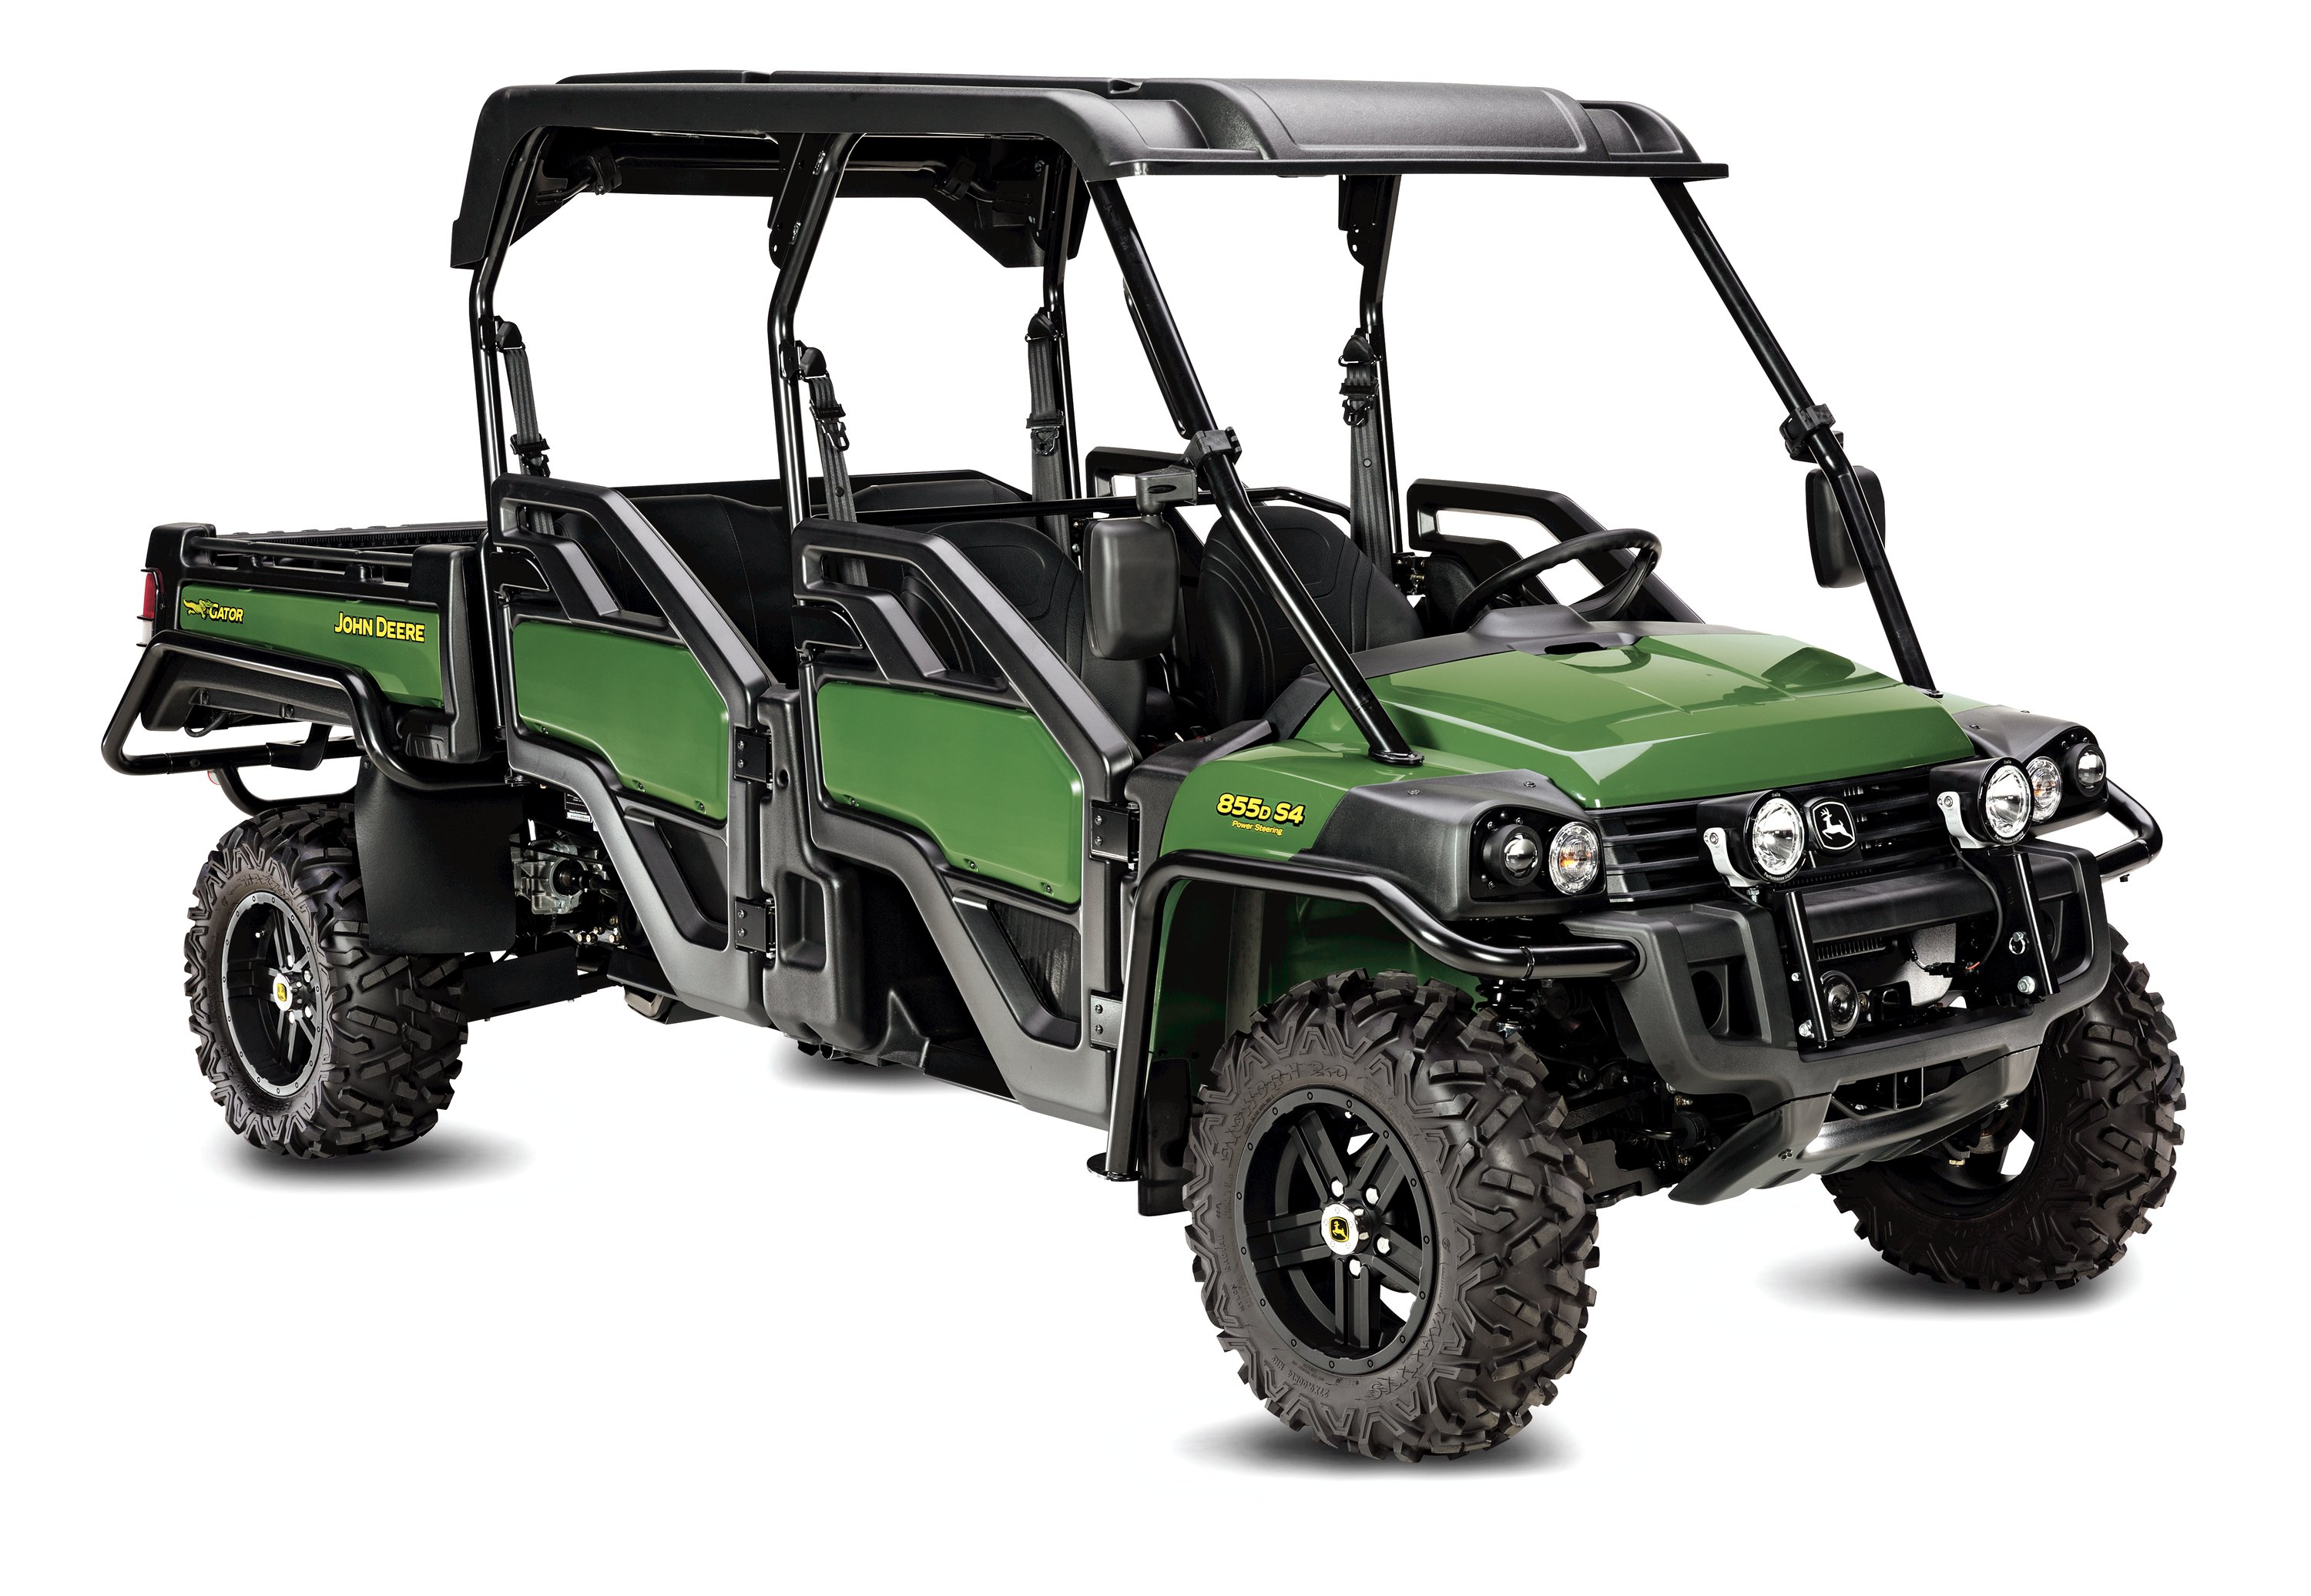 New John Deere XUV 855D S4 Gator 4x4 utility vehicle